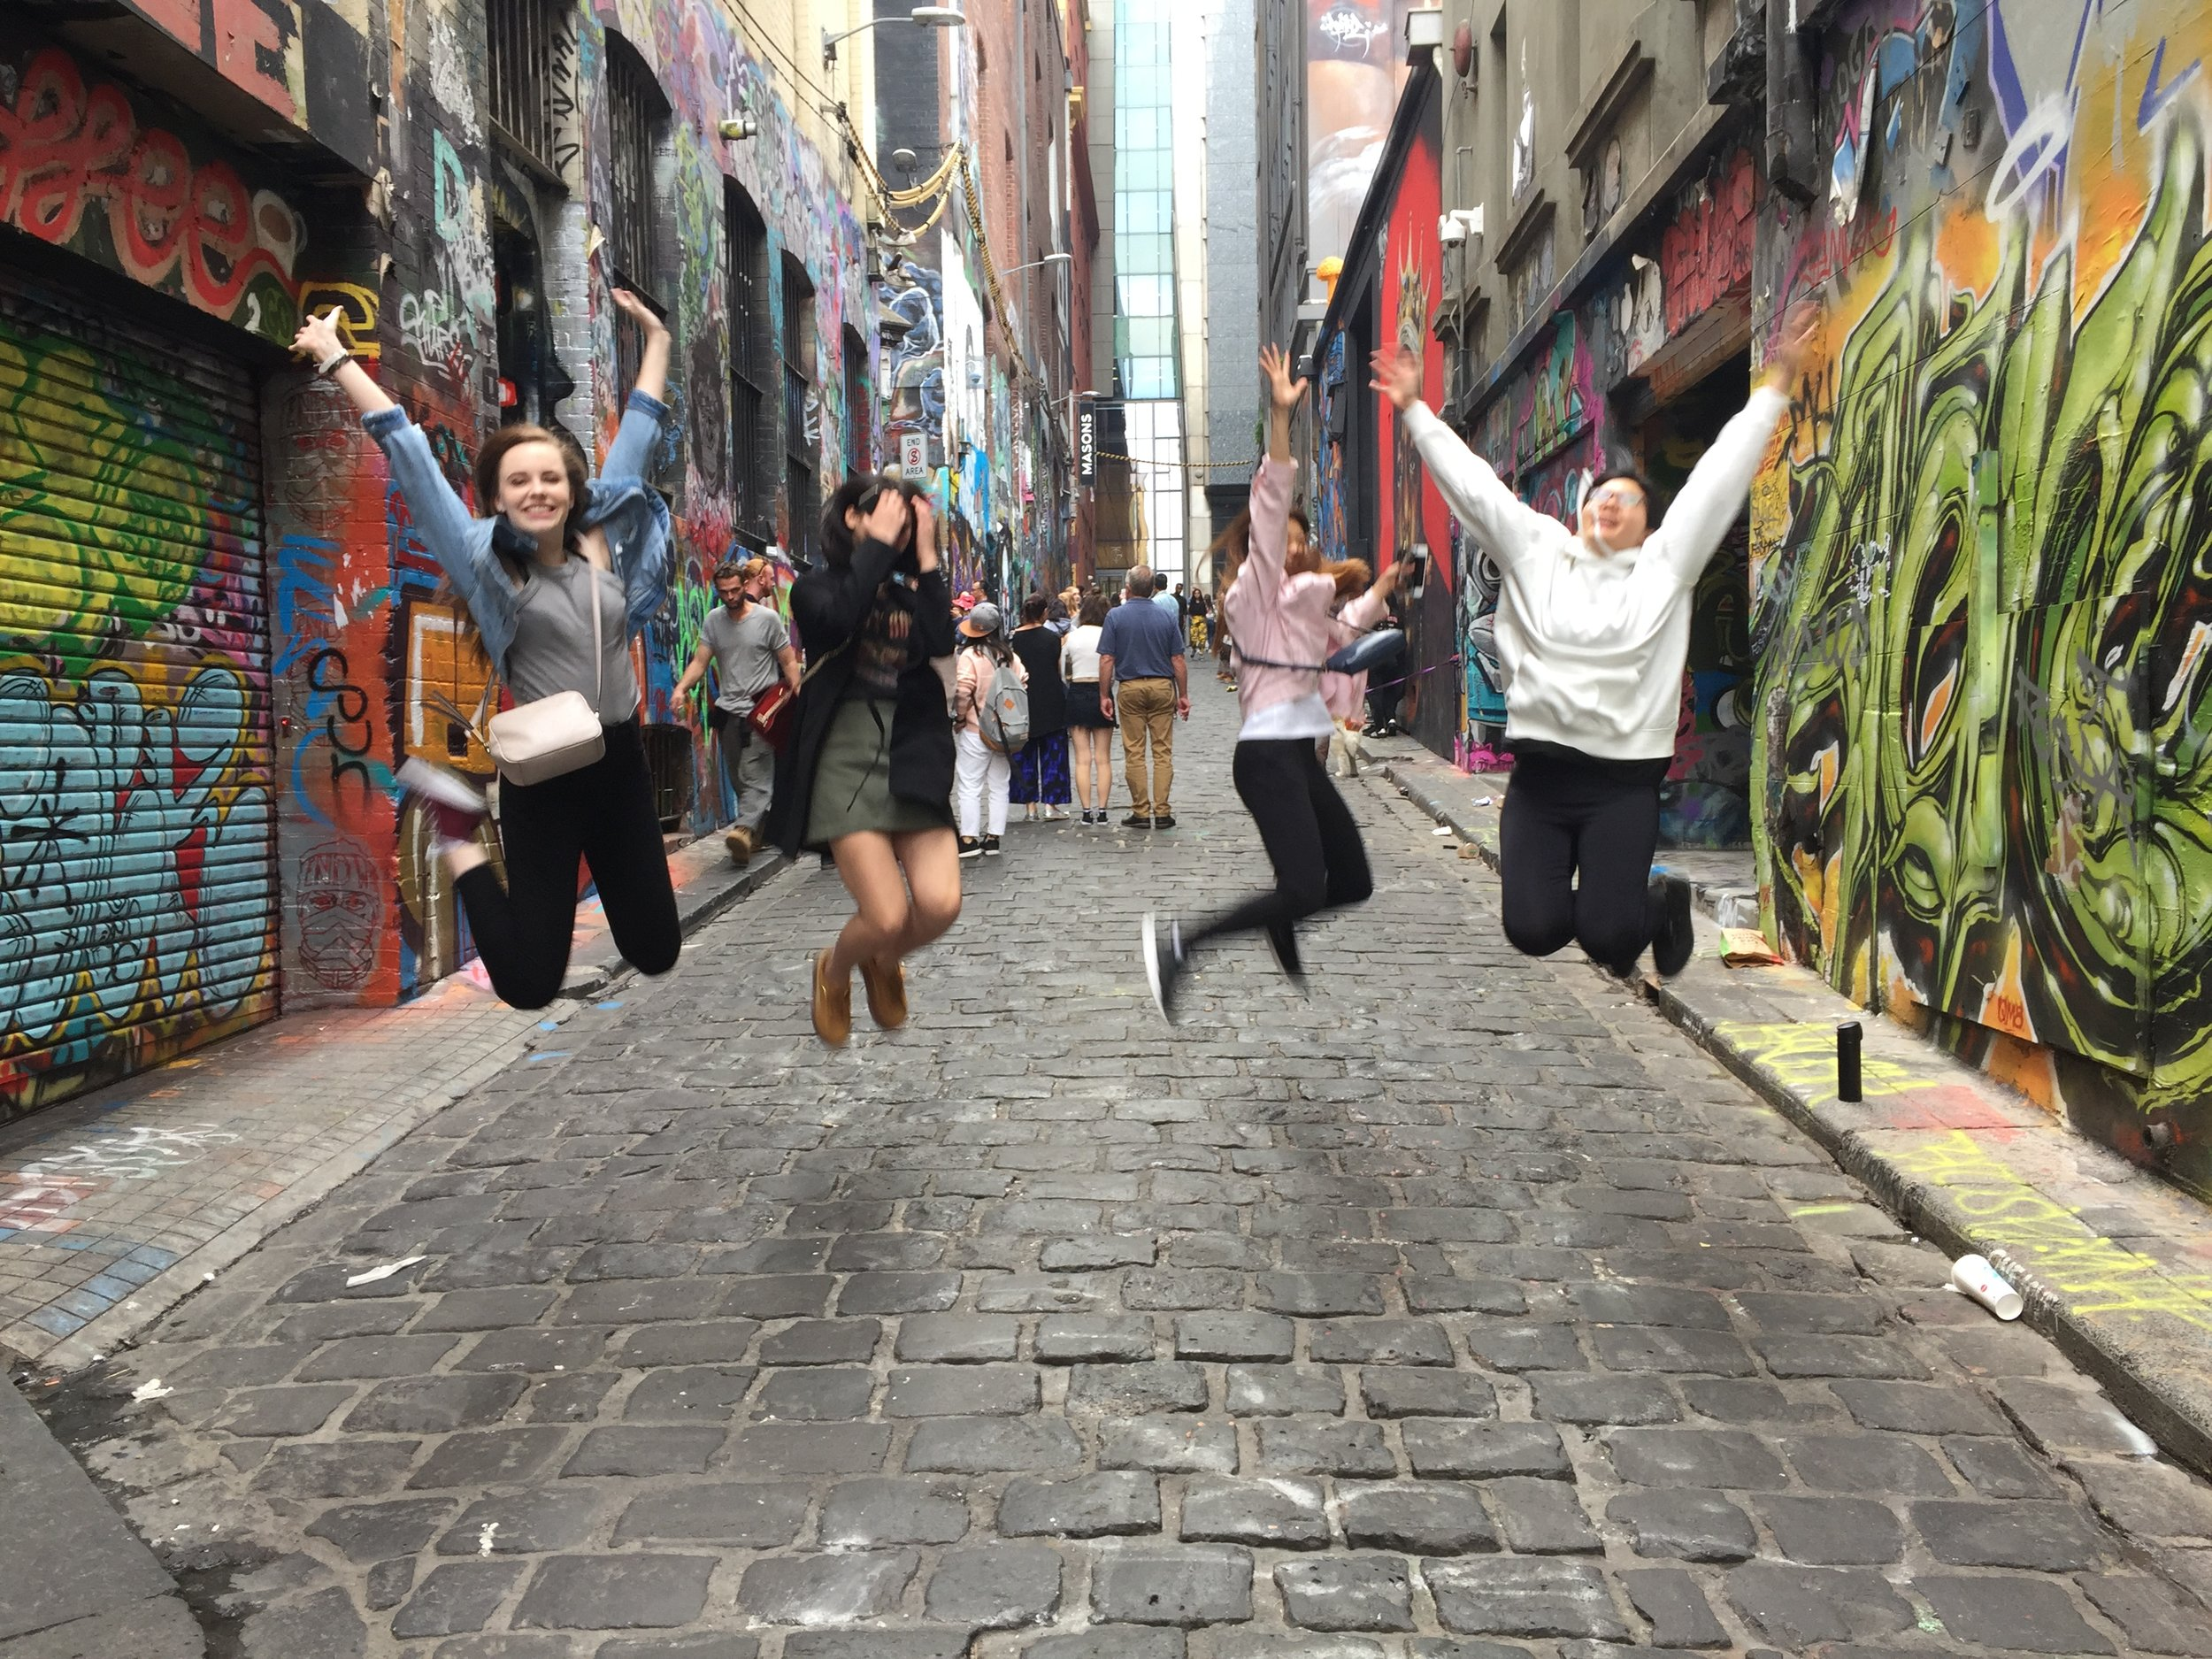 My roommates and I exploring Hosier Lane in Melbourne, which is known for its graffiti artists and street art.